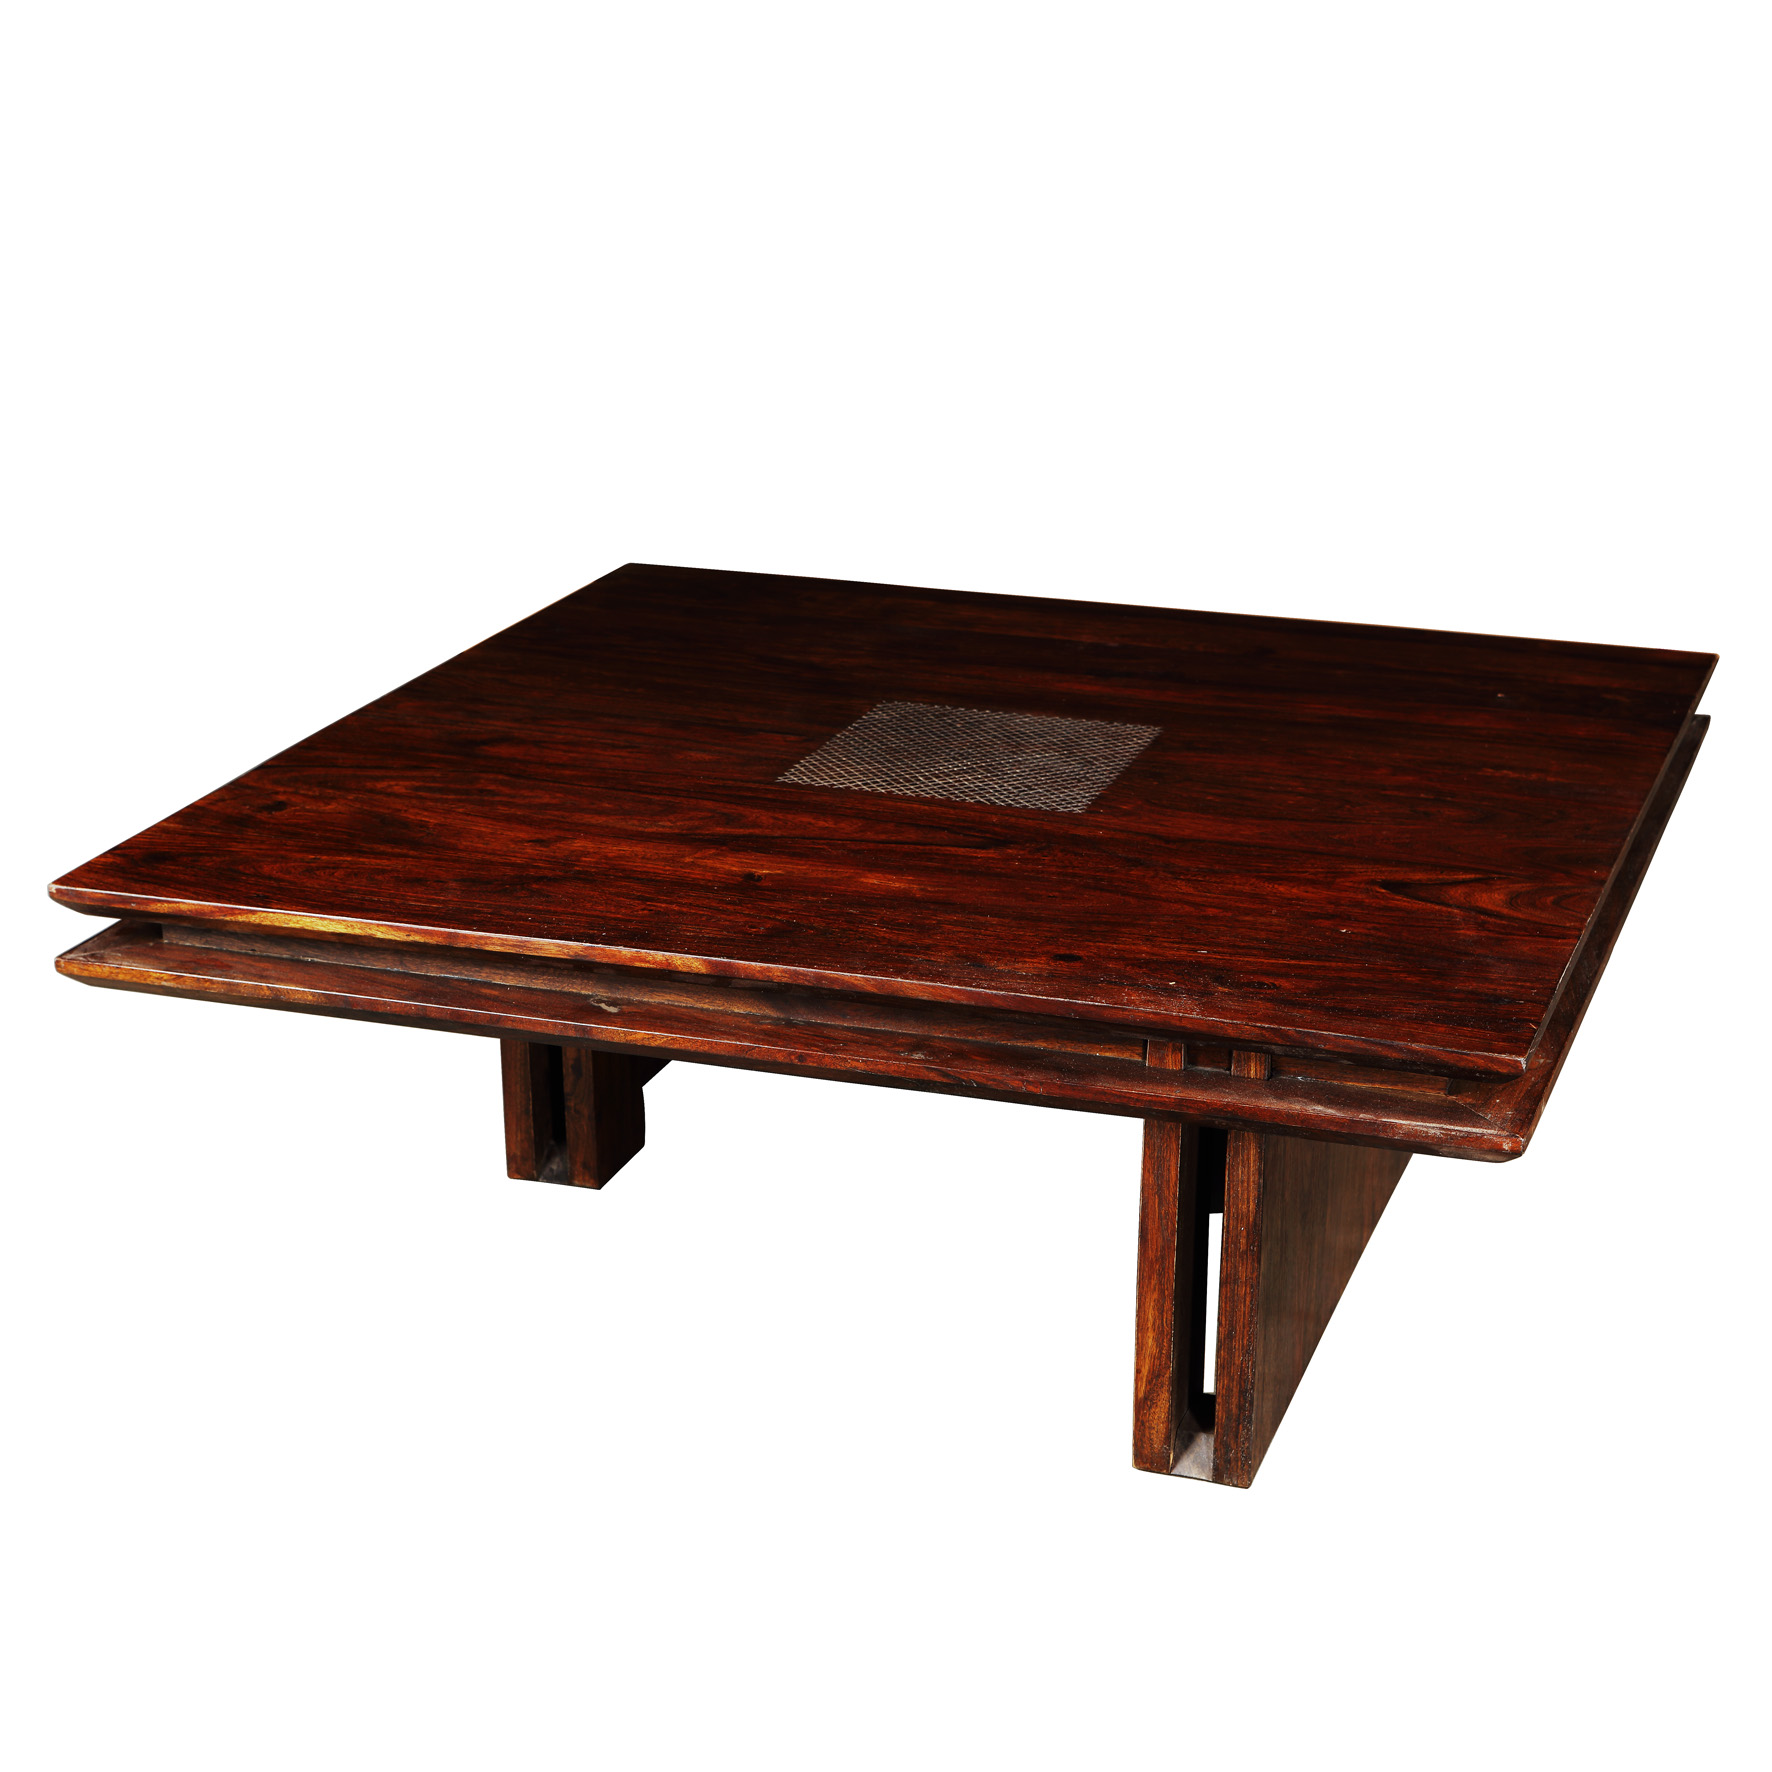 La table basse tribal la maison coloniale - Table basse maison coloniale ...